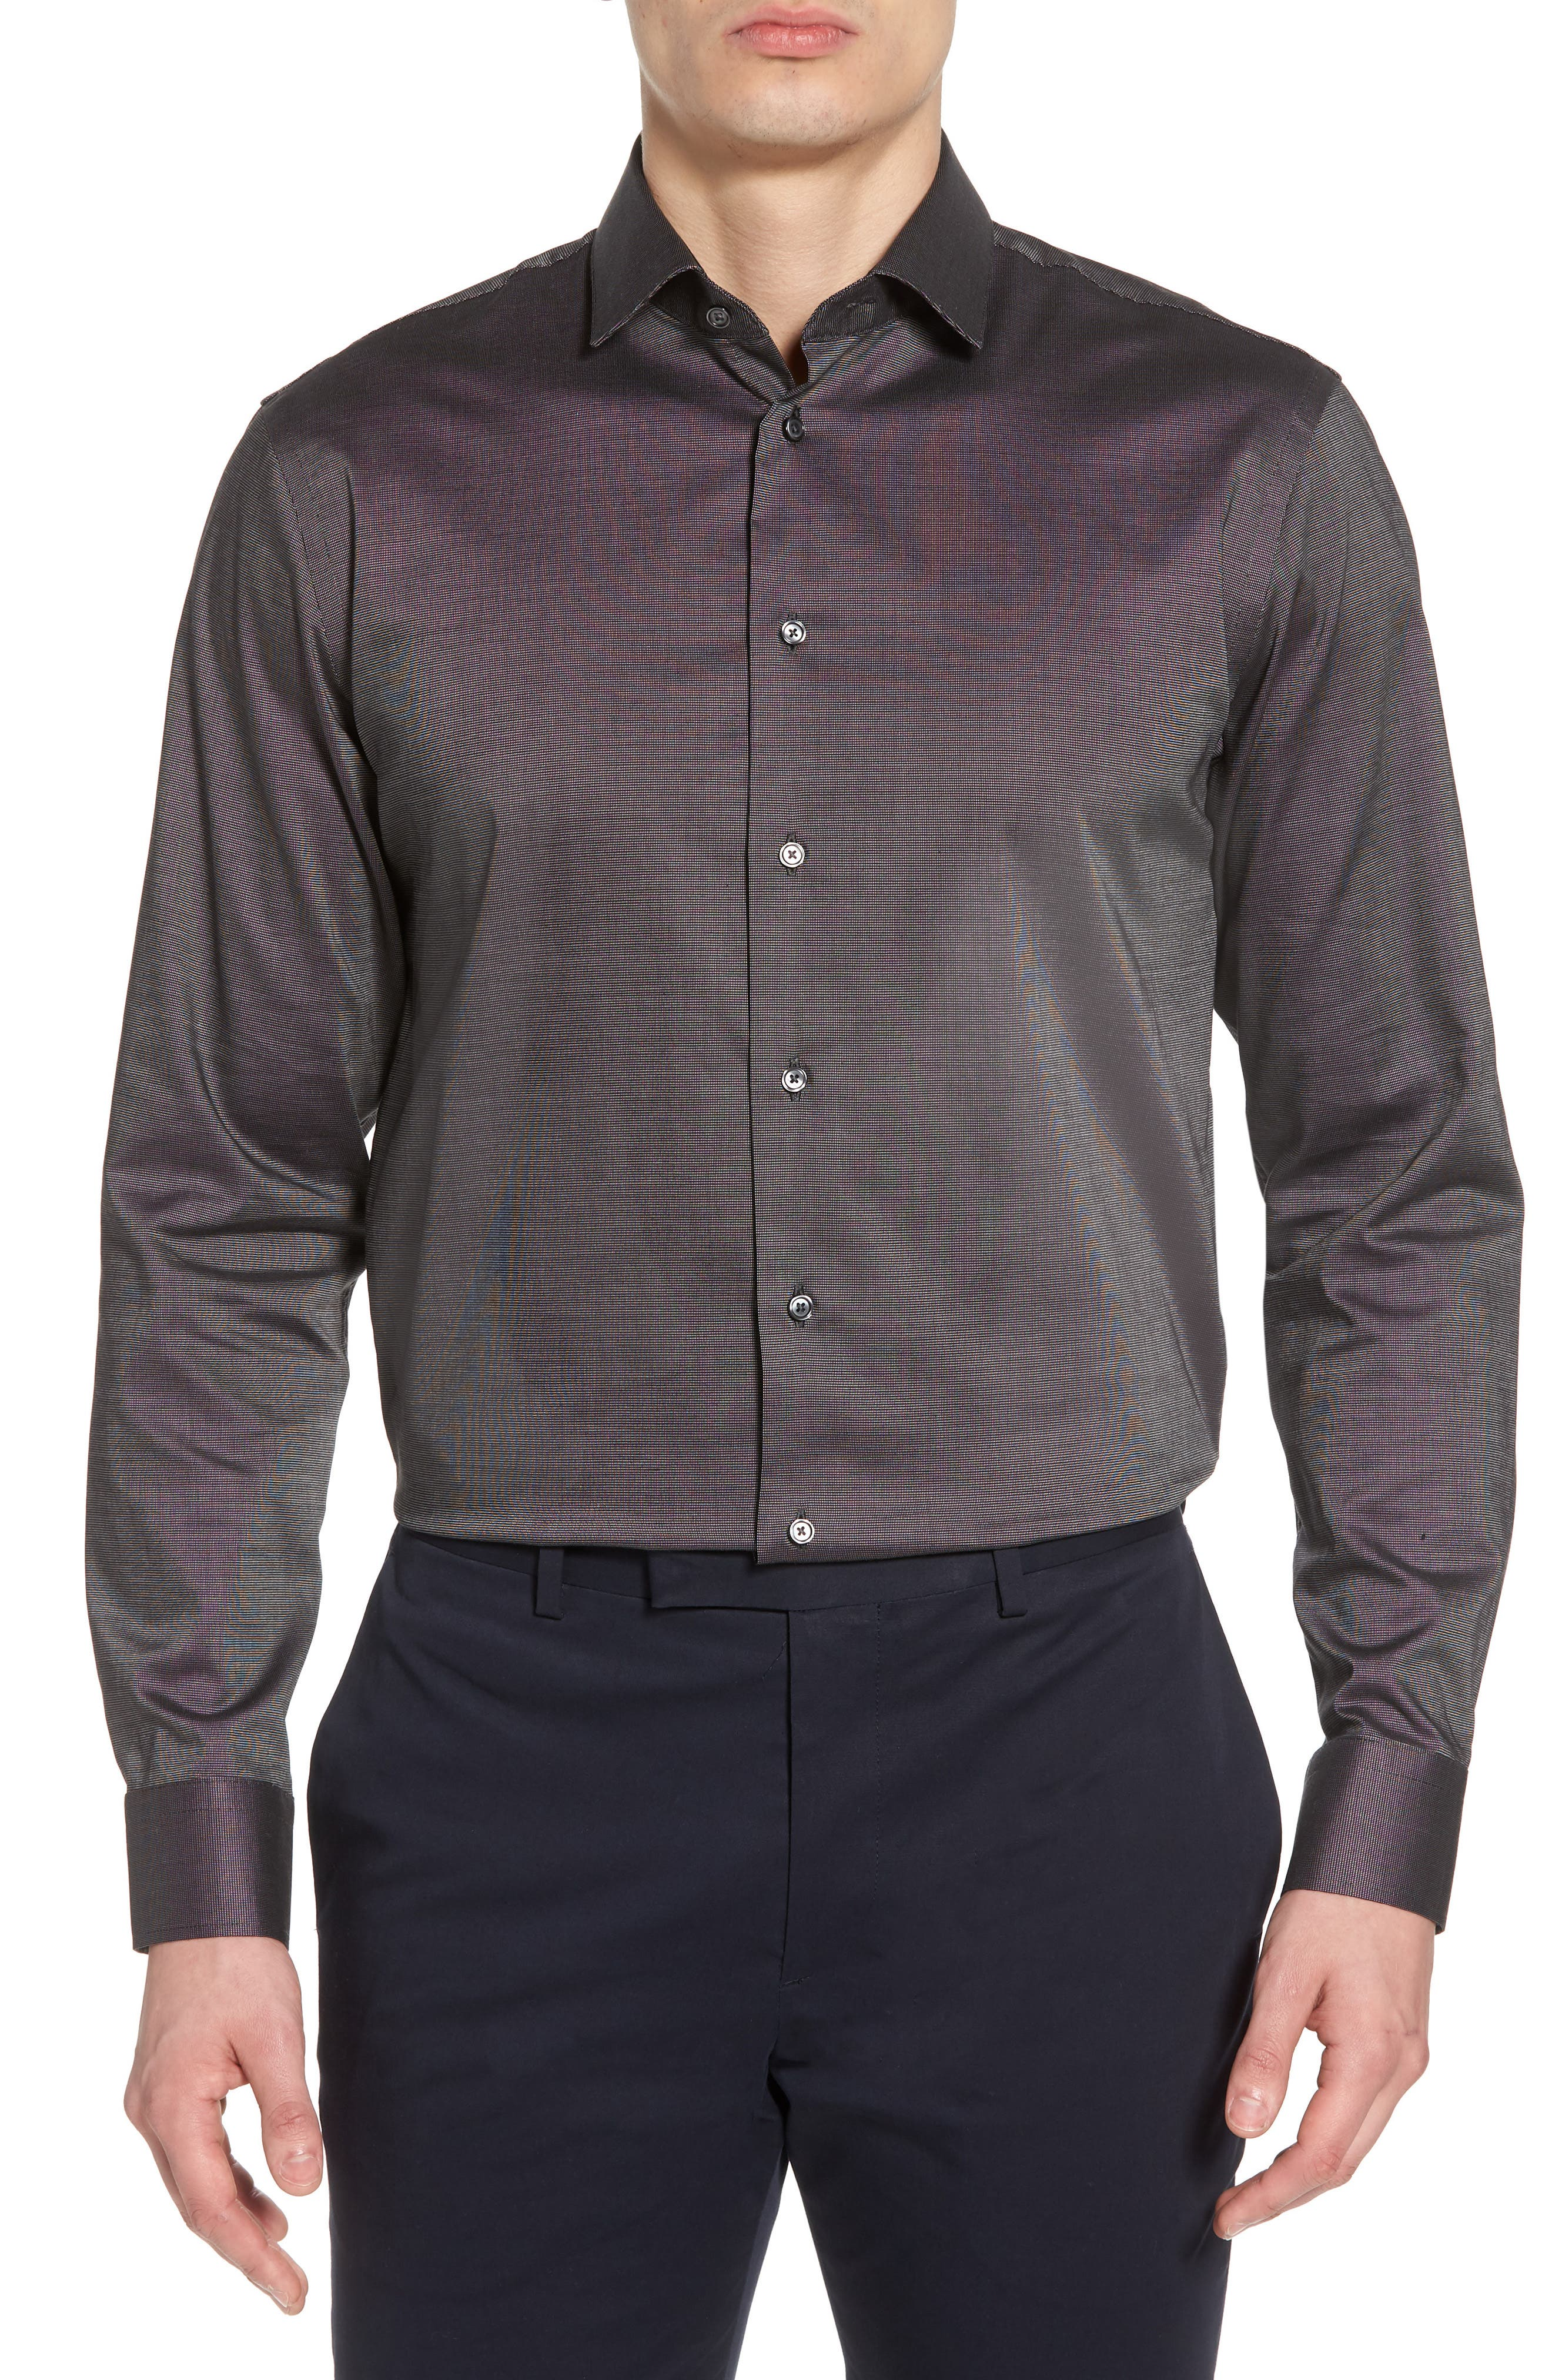 Alternate Image 1 Selected - Calibrate Trim Fit Stretch Solid Dress Shirt